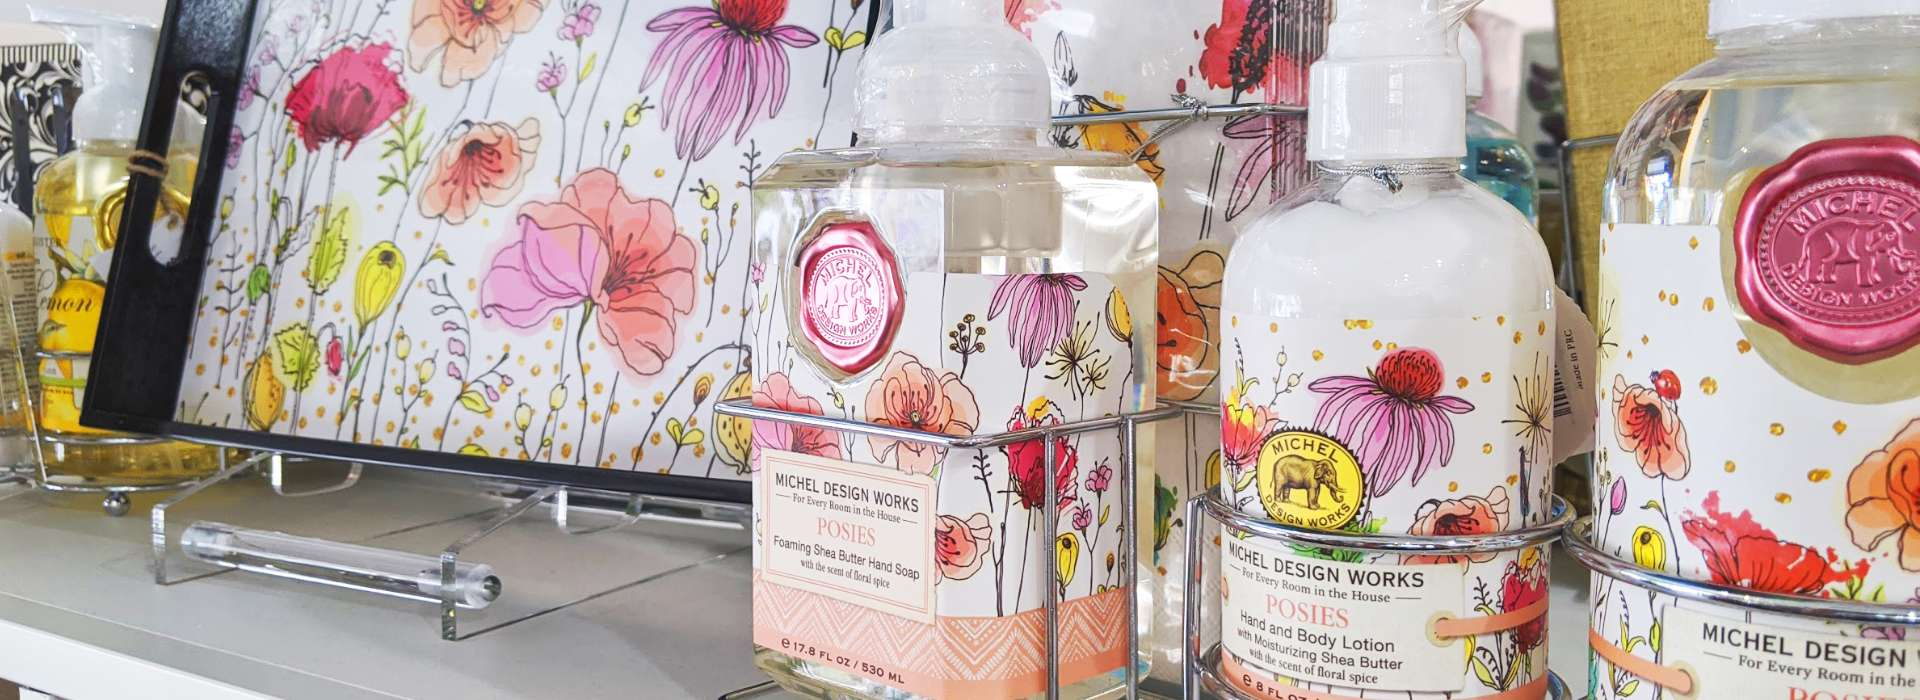 Selection of Michel Design Posies lotions and soap bottles